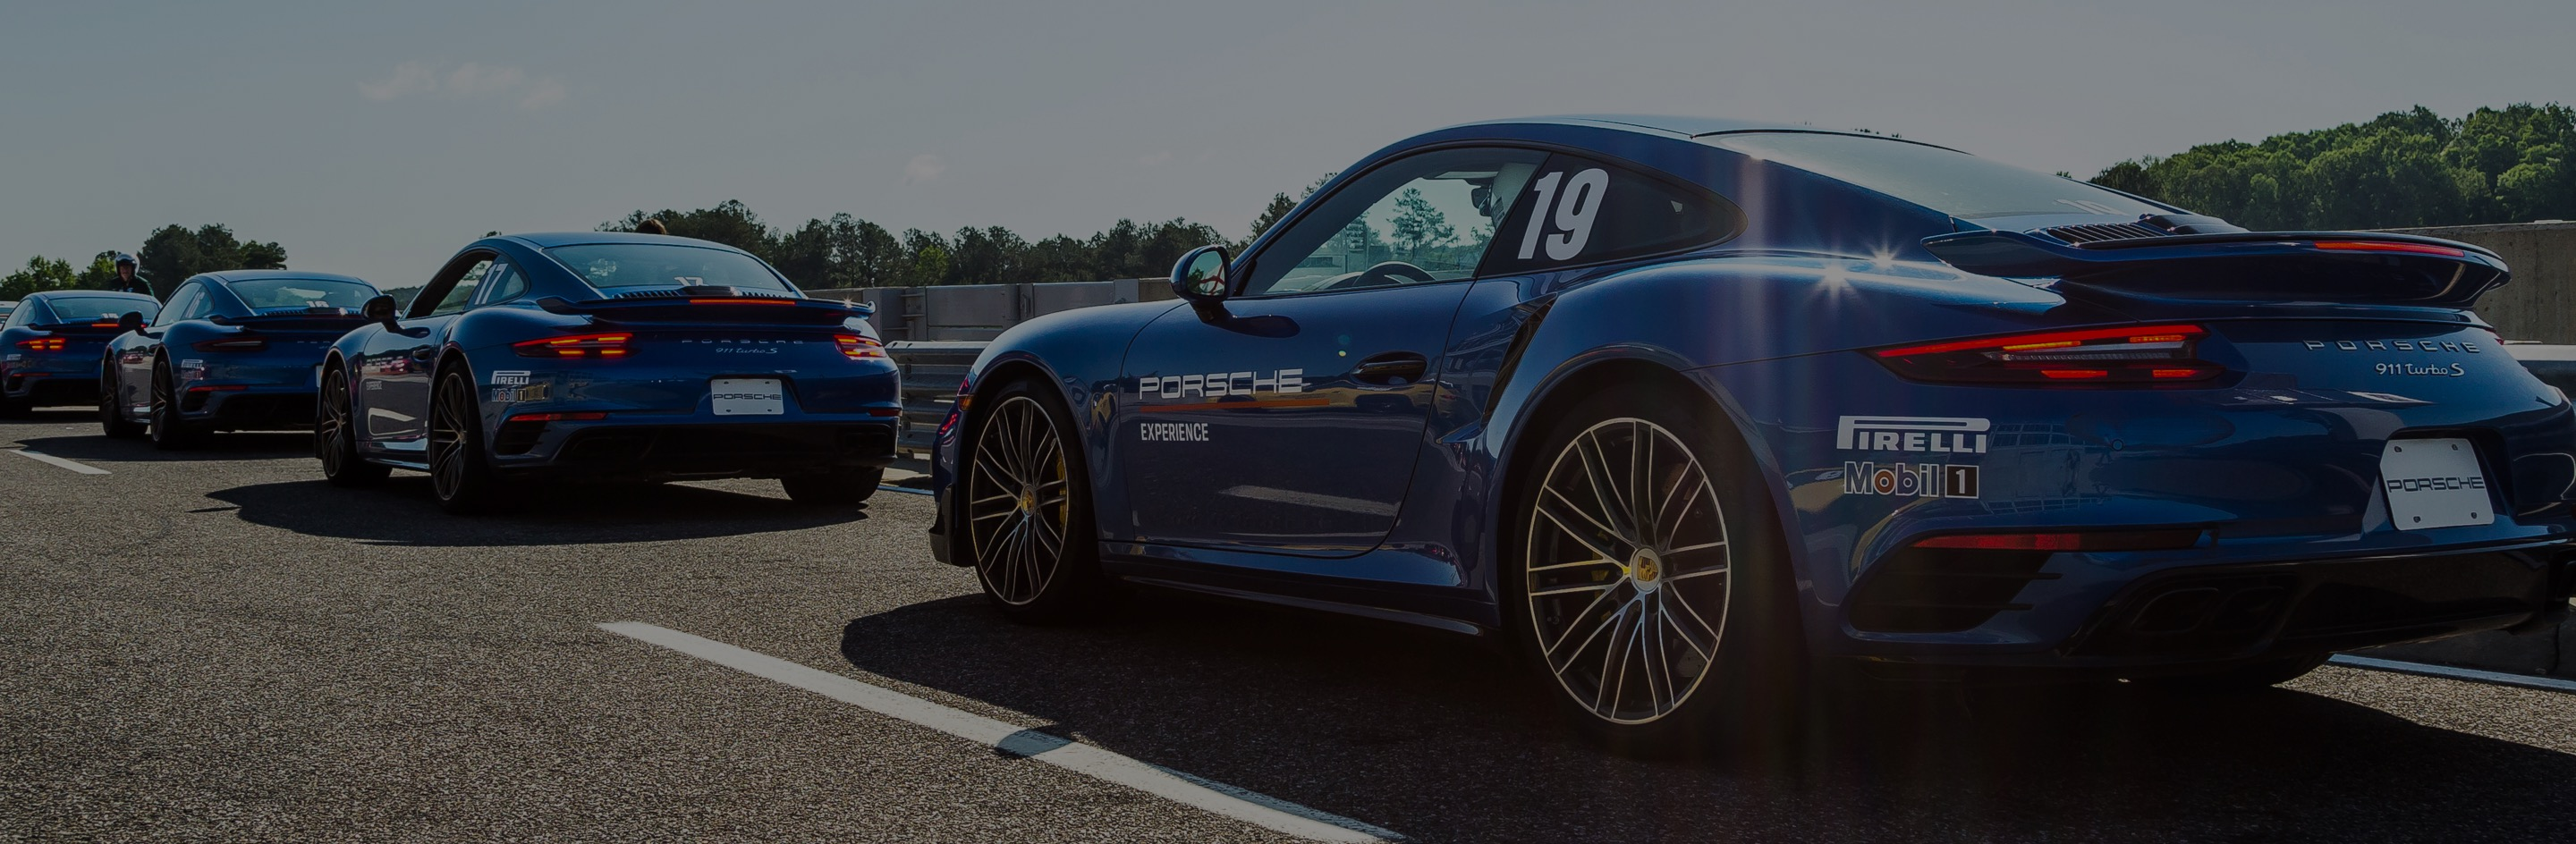 blue porsches in a row